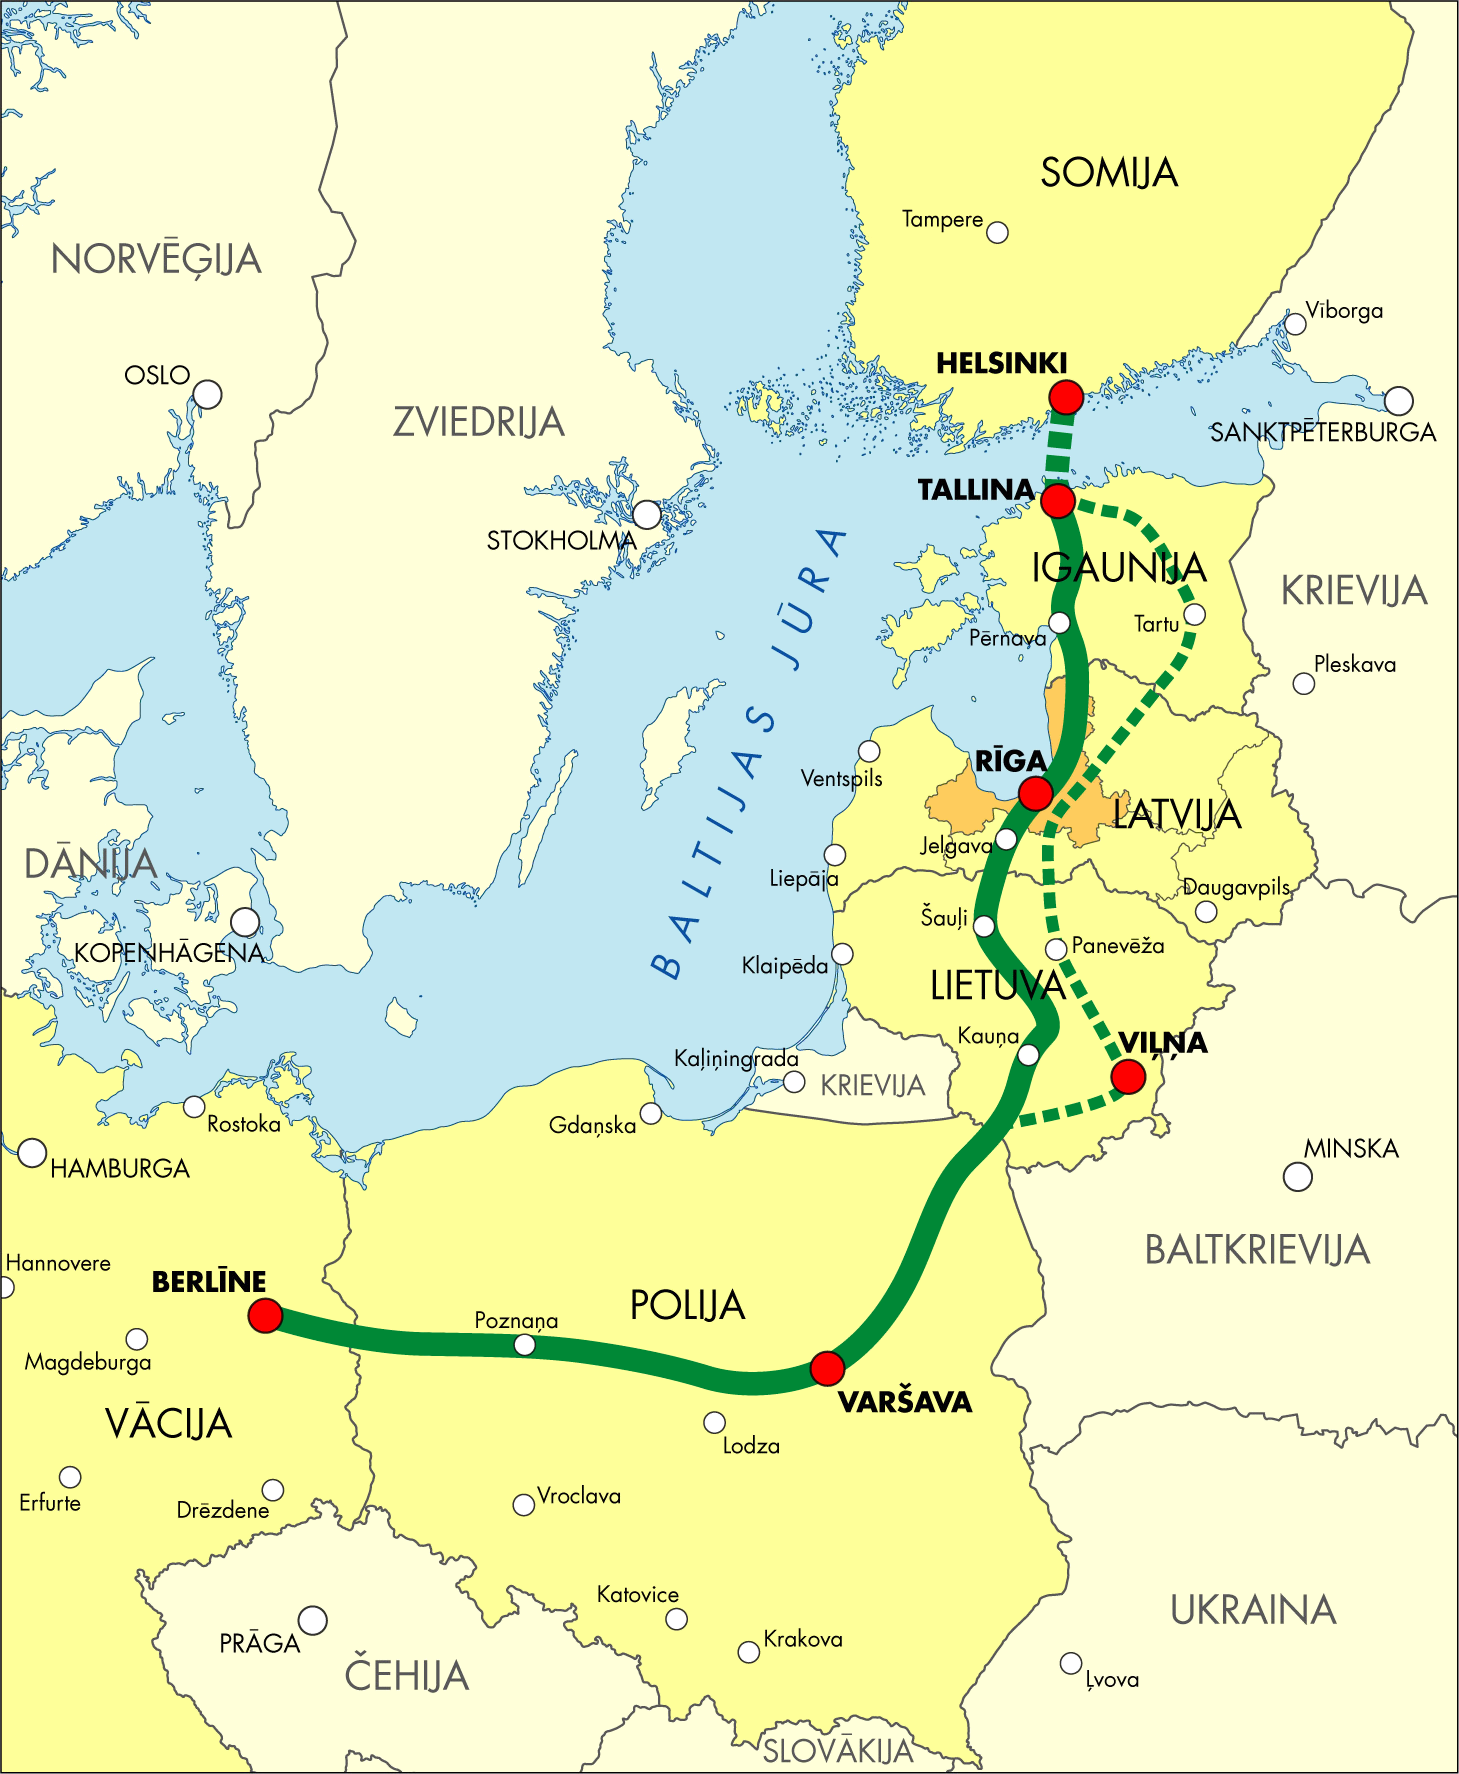 https://upload.wikimedia.org/wikipedia/commons/1/12/RailBaltica.png